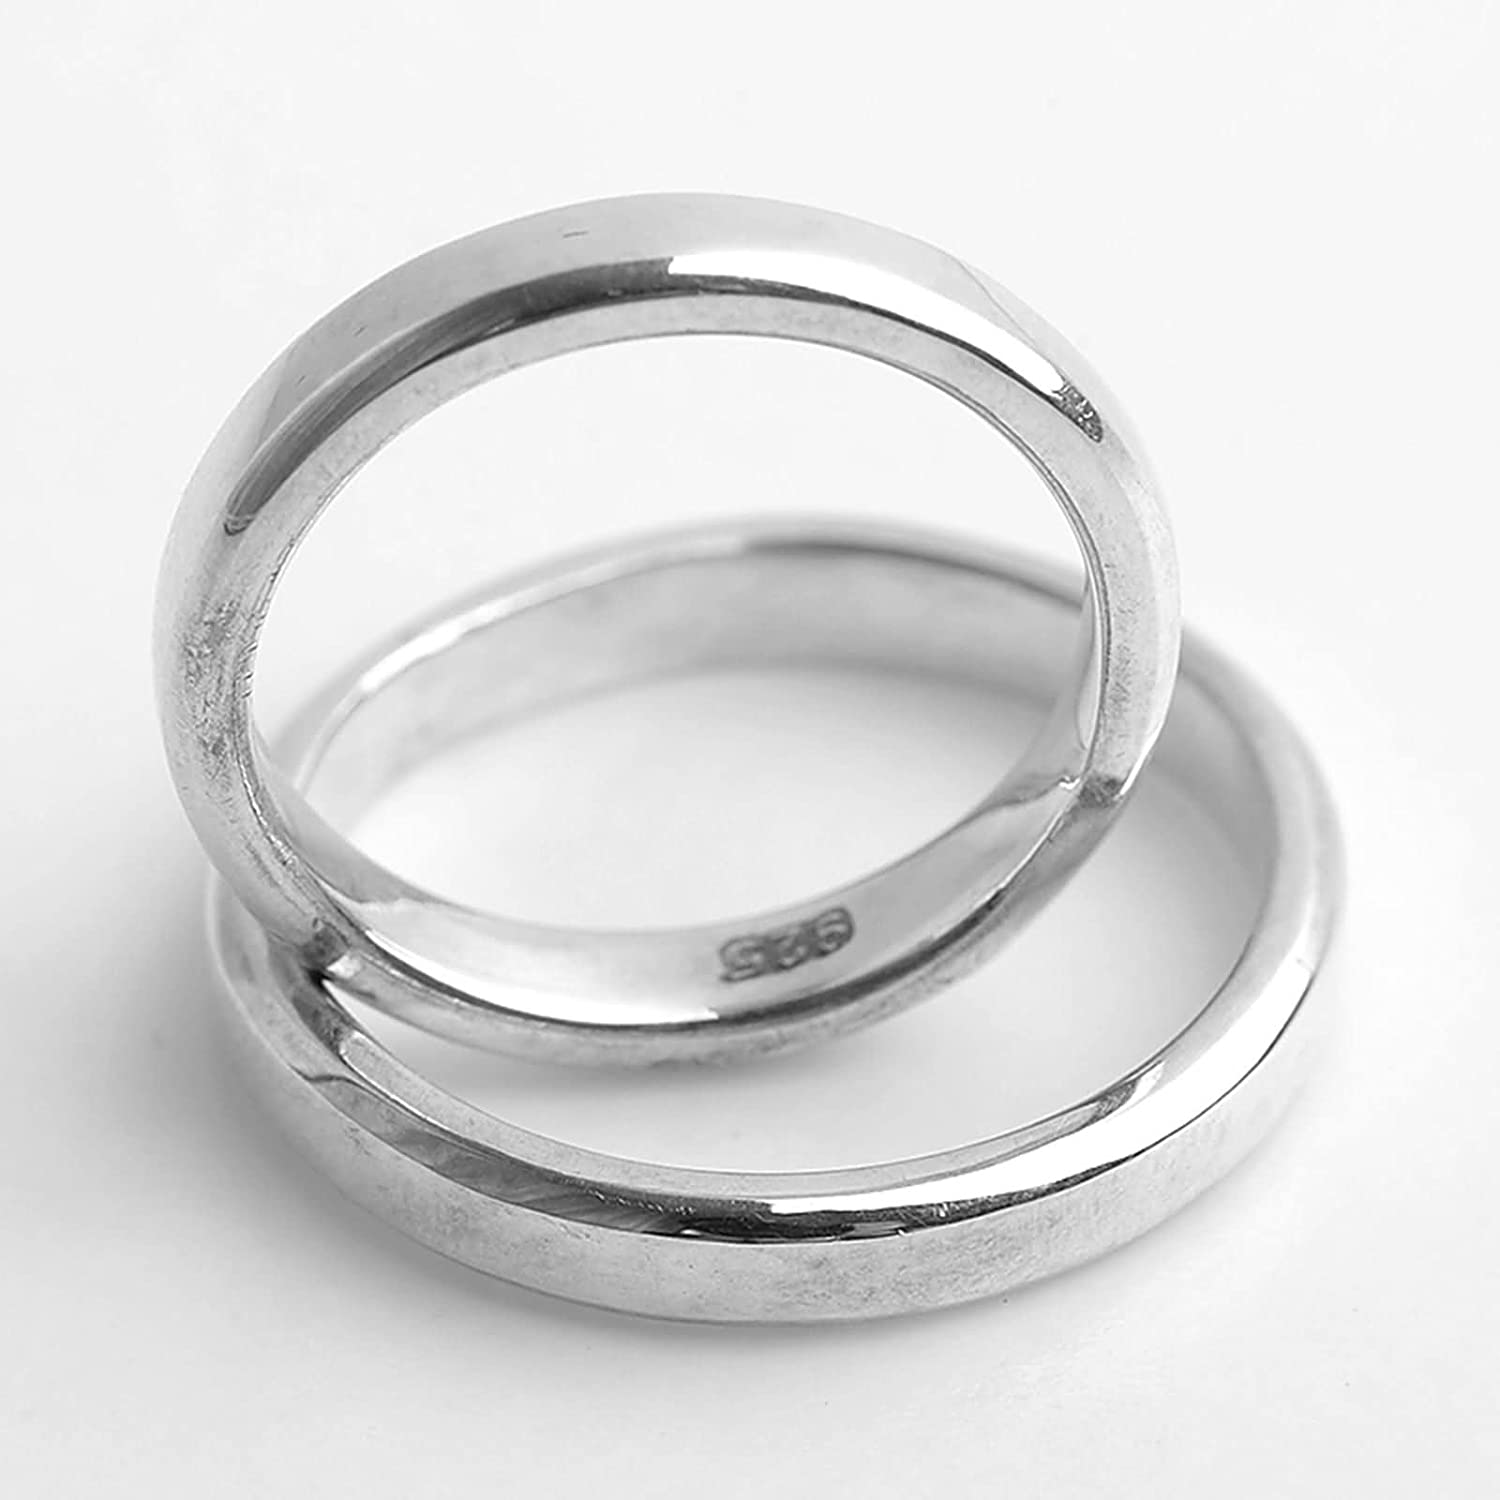 Bishilin Silver Plated Mens Ring Smooth Round Width 3.1MM Friendship Rings Silver Size 4.5